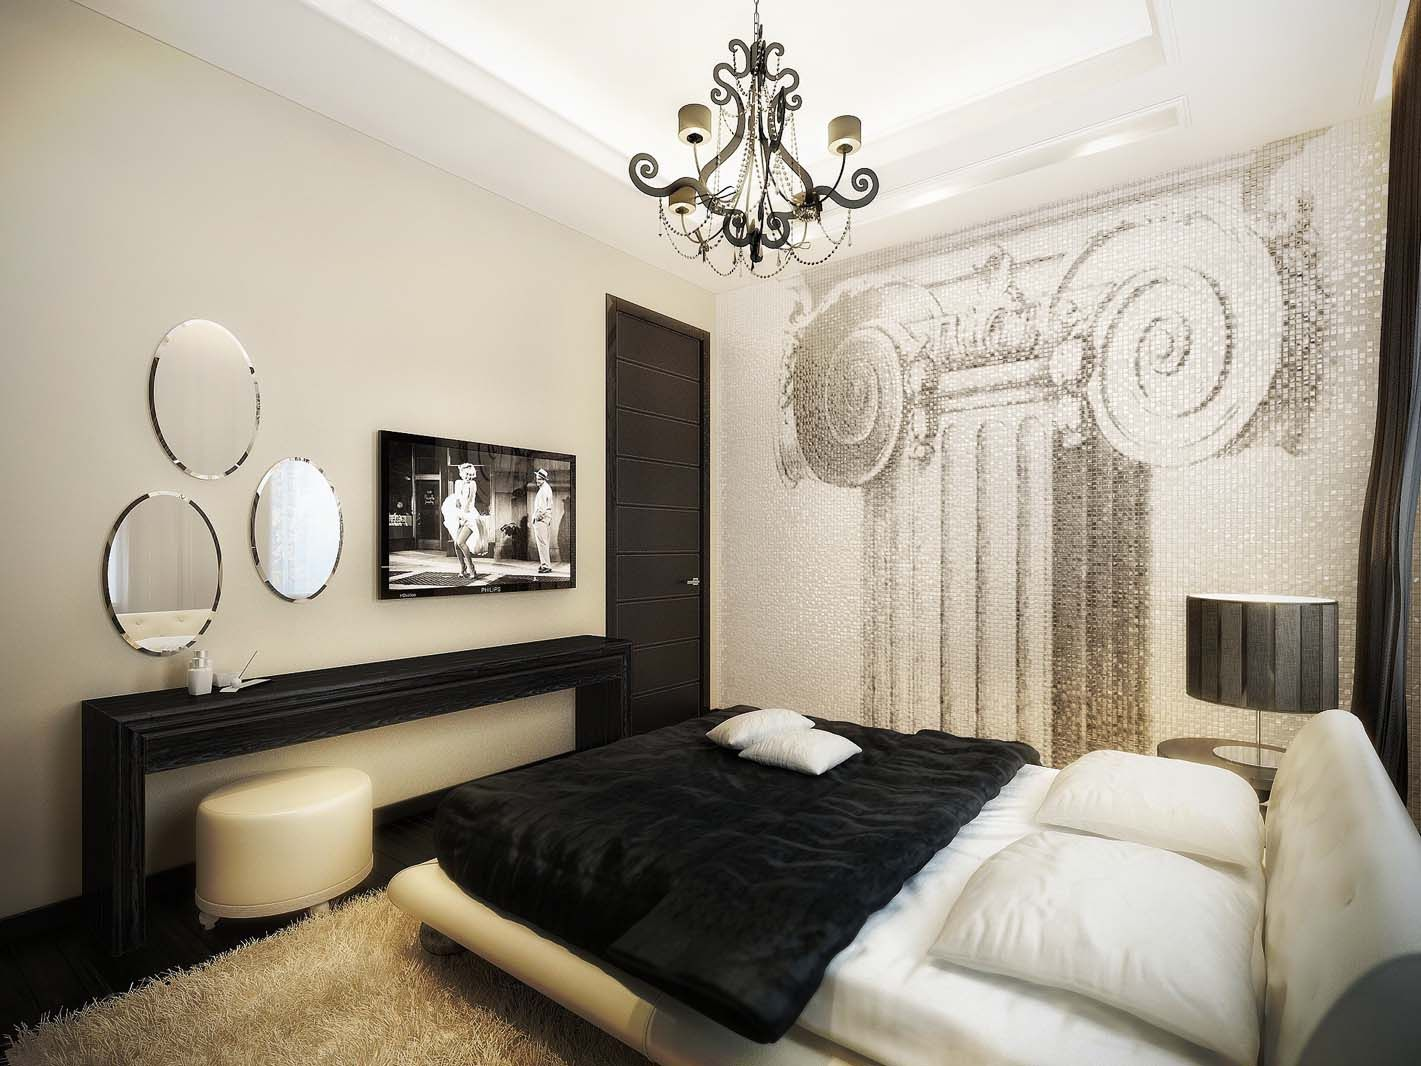 Modern apartment bedrooms - Luxury Vintage Apartment Master Bedroom Decor Homedecor Homedesign